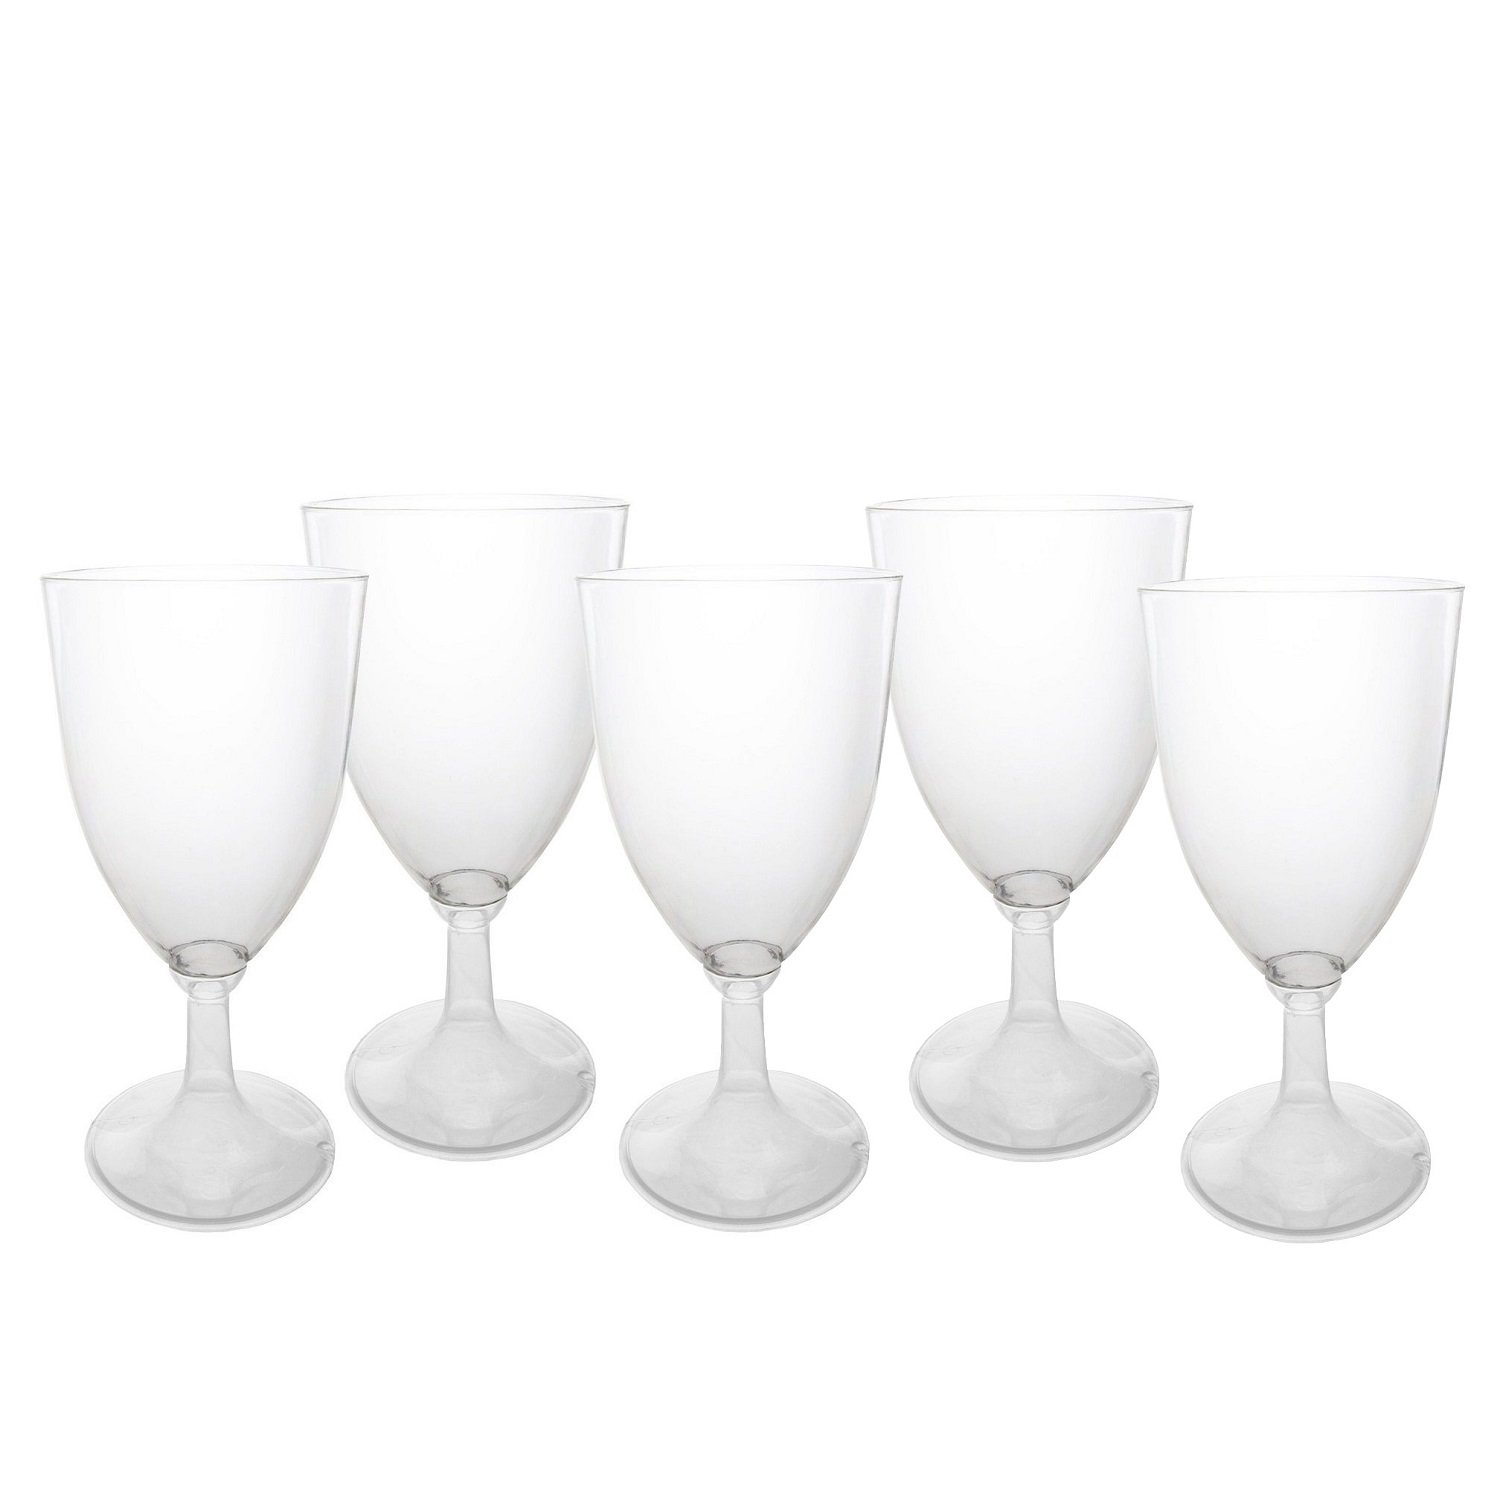 Party Essentials N200450 144Count Hard Plastic Onepiece 8 oz Wine Glasses, Clear by Party Essentials